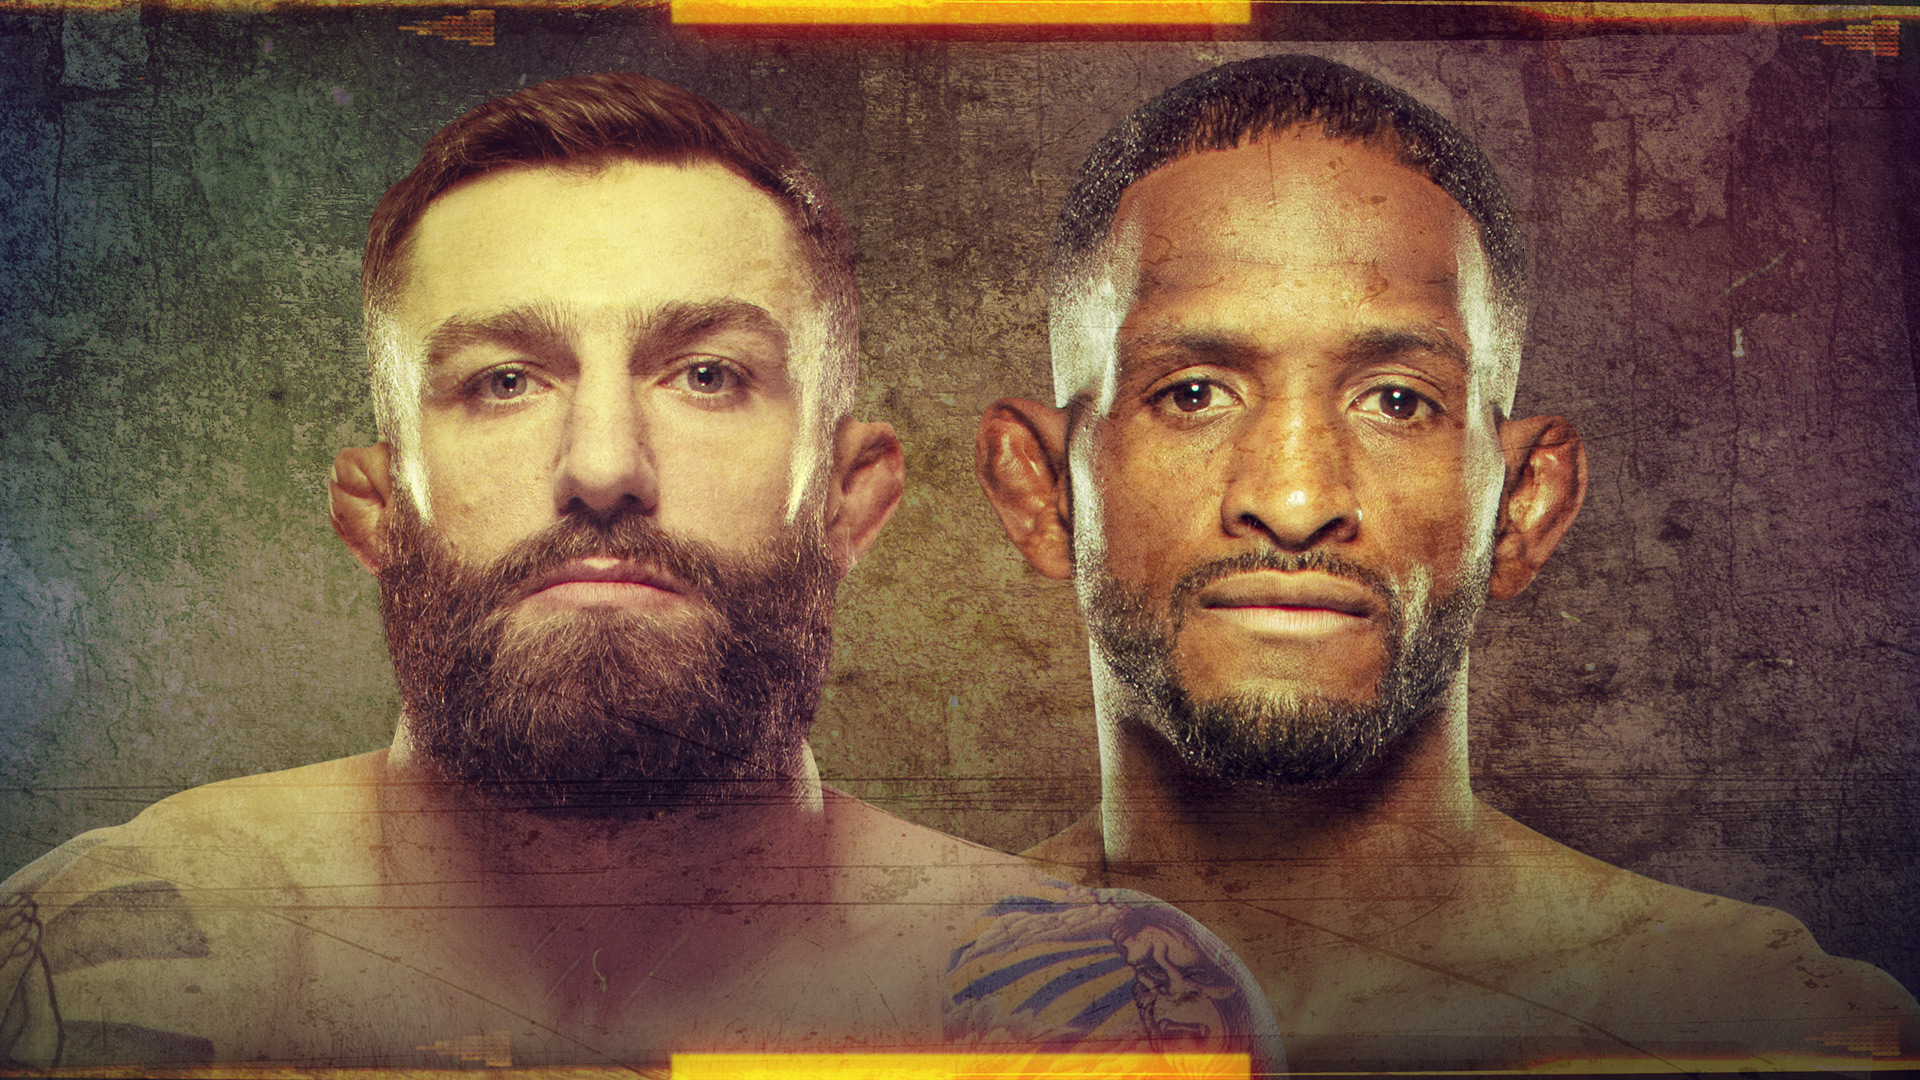 UFC Fight Night: Chiesa vs Magny takes place January 20th live from UFC Fight Island